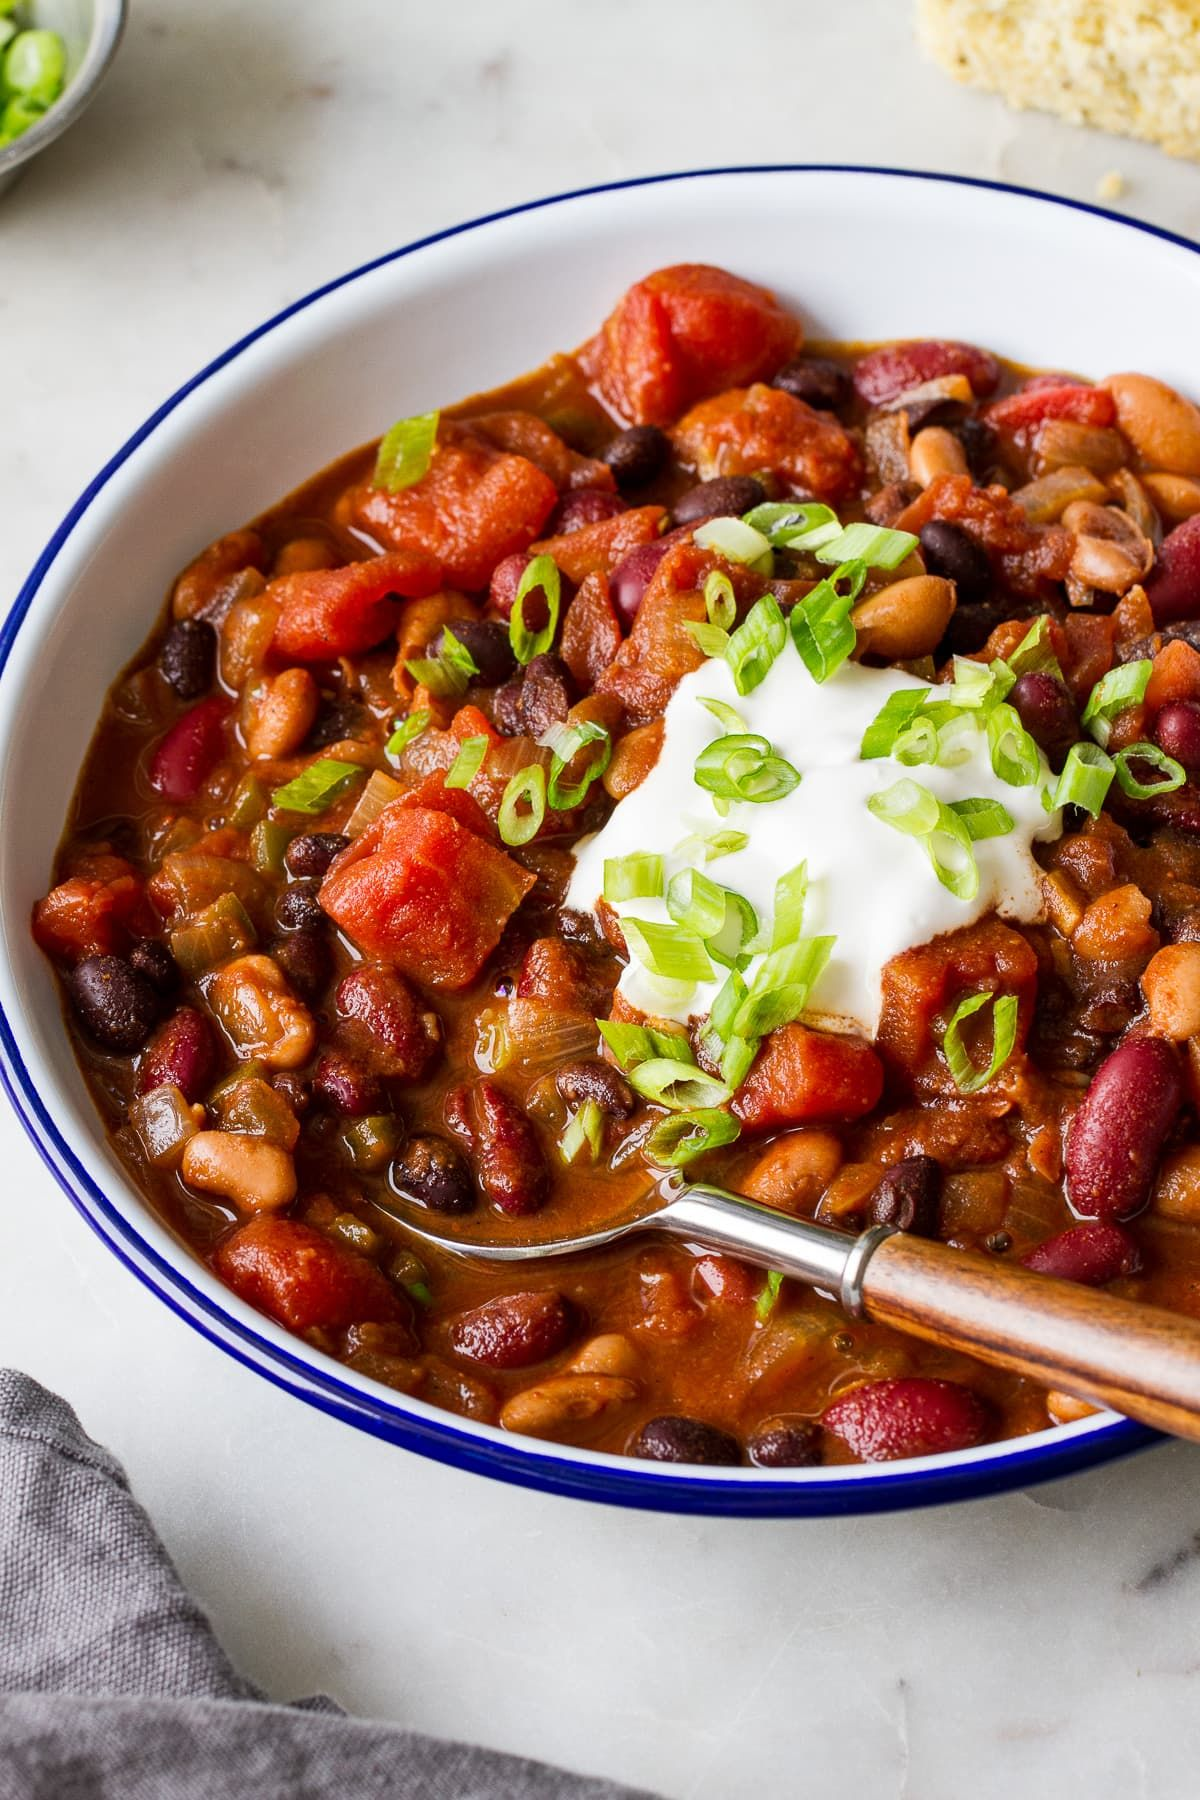 This Quick And Easy 3 Bean Chili Is Perfect When You Want A Cozy Warm Vegan Chili In 30 Minutes Or Le Three Bean Chili Vegetarian Recipes Healthy No Bean Chili